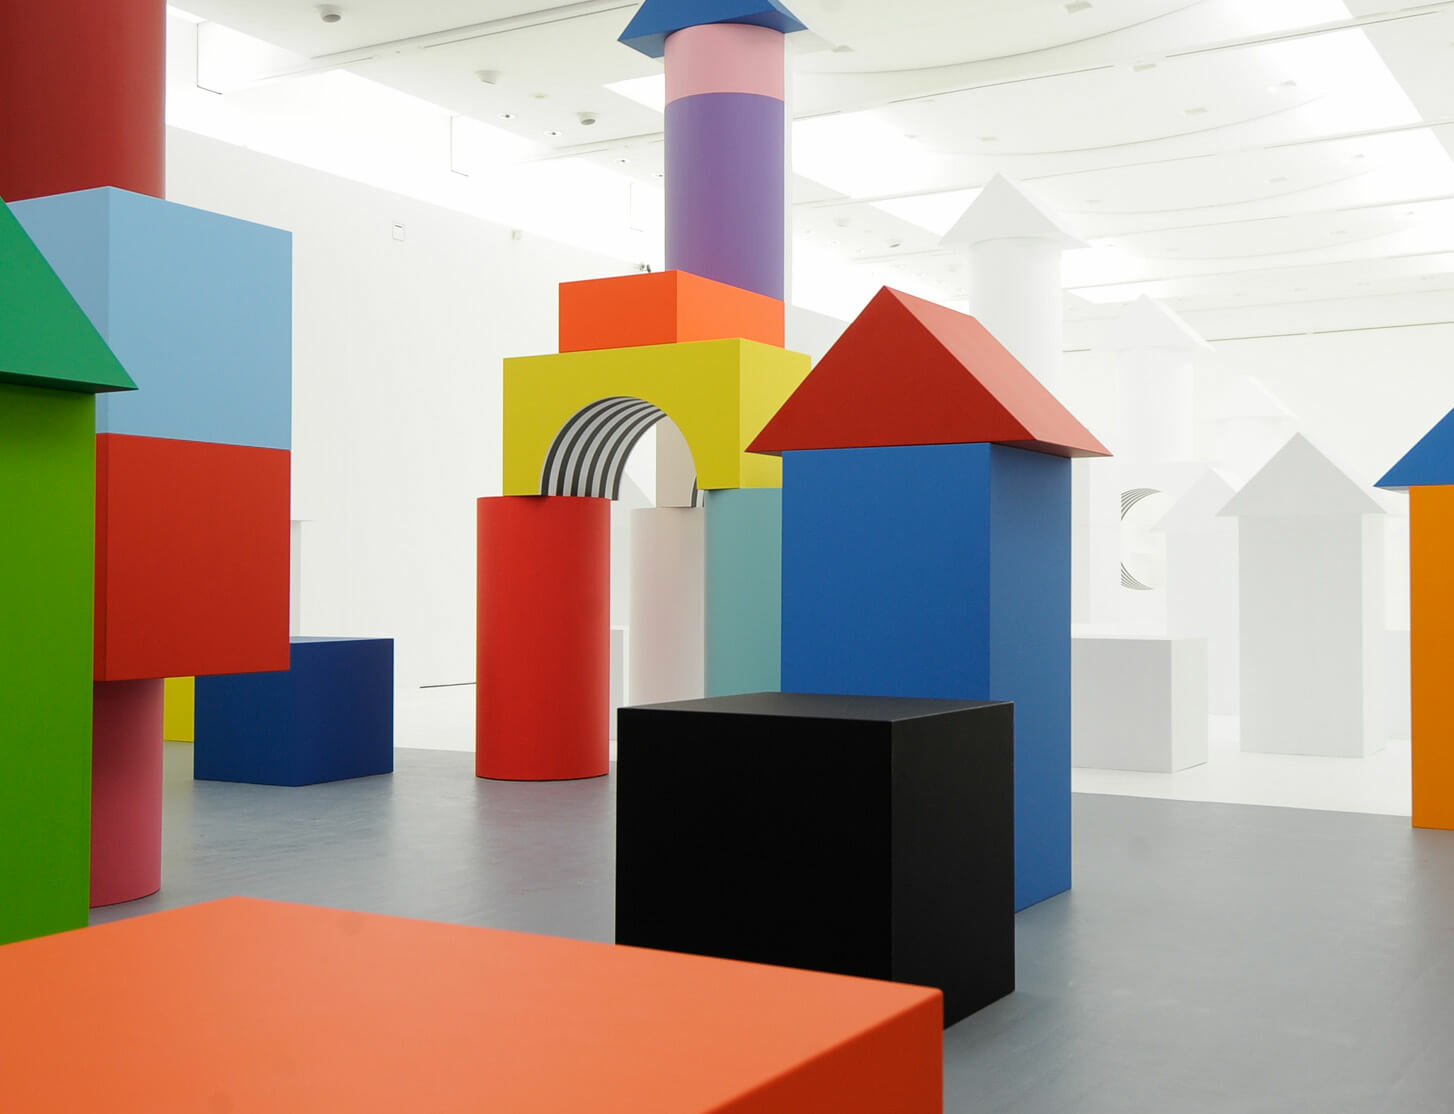 New installation by Daniel Buren makes its Australian debut with Carriageworks